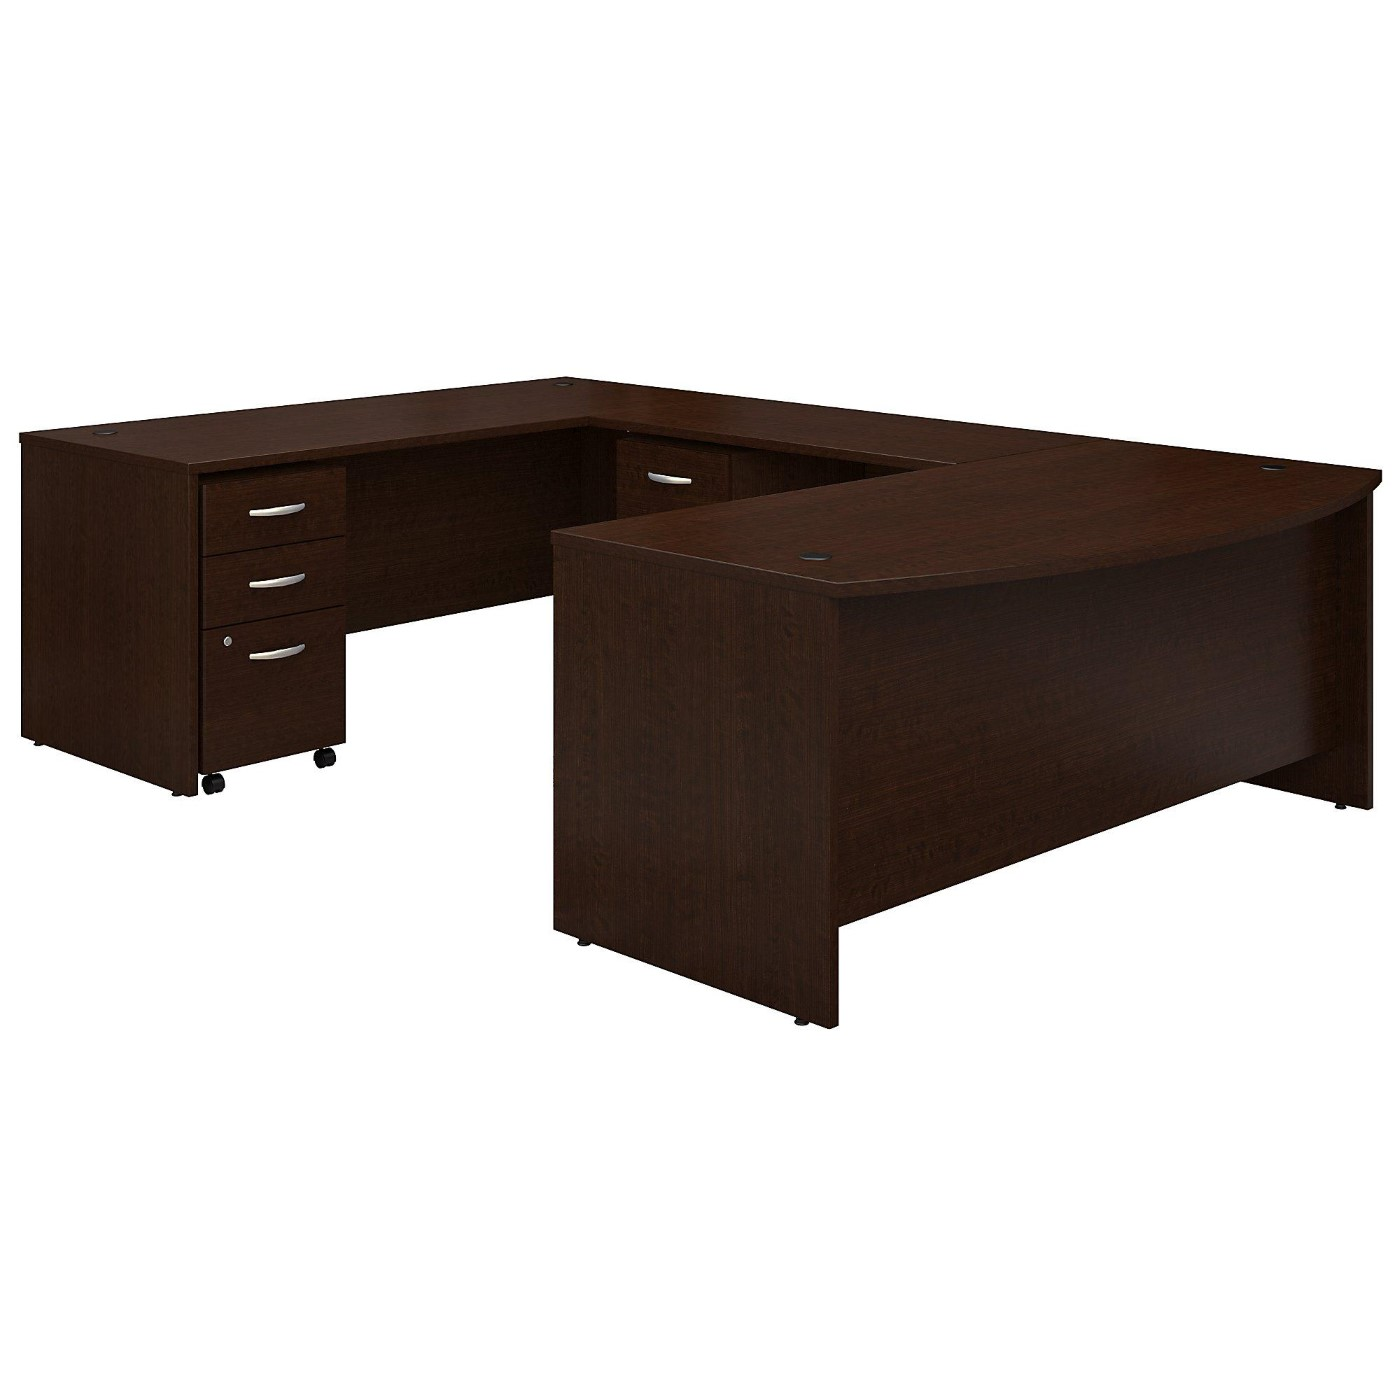 BUSH BUSINESS FURNITURE SERIES C 72W X 36D BOW FRONT U SHAPED DESK WITH MOBILE FILE CABINETS. FREE SHIPPING</font></b></font>&#x1F384<font color=red><b>ERGONOMICHOME HOLIDAY SALE - ENDS DEC. 17, 2019</b></font>&#x1F384